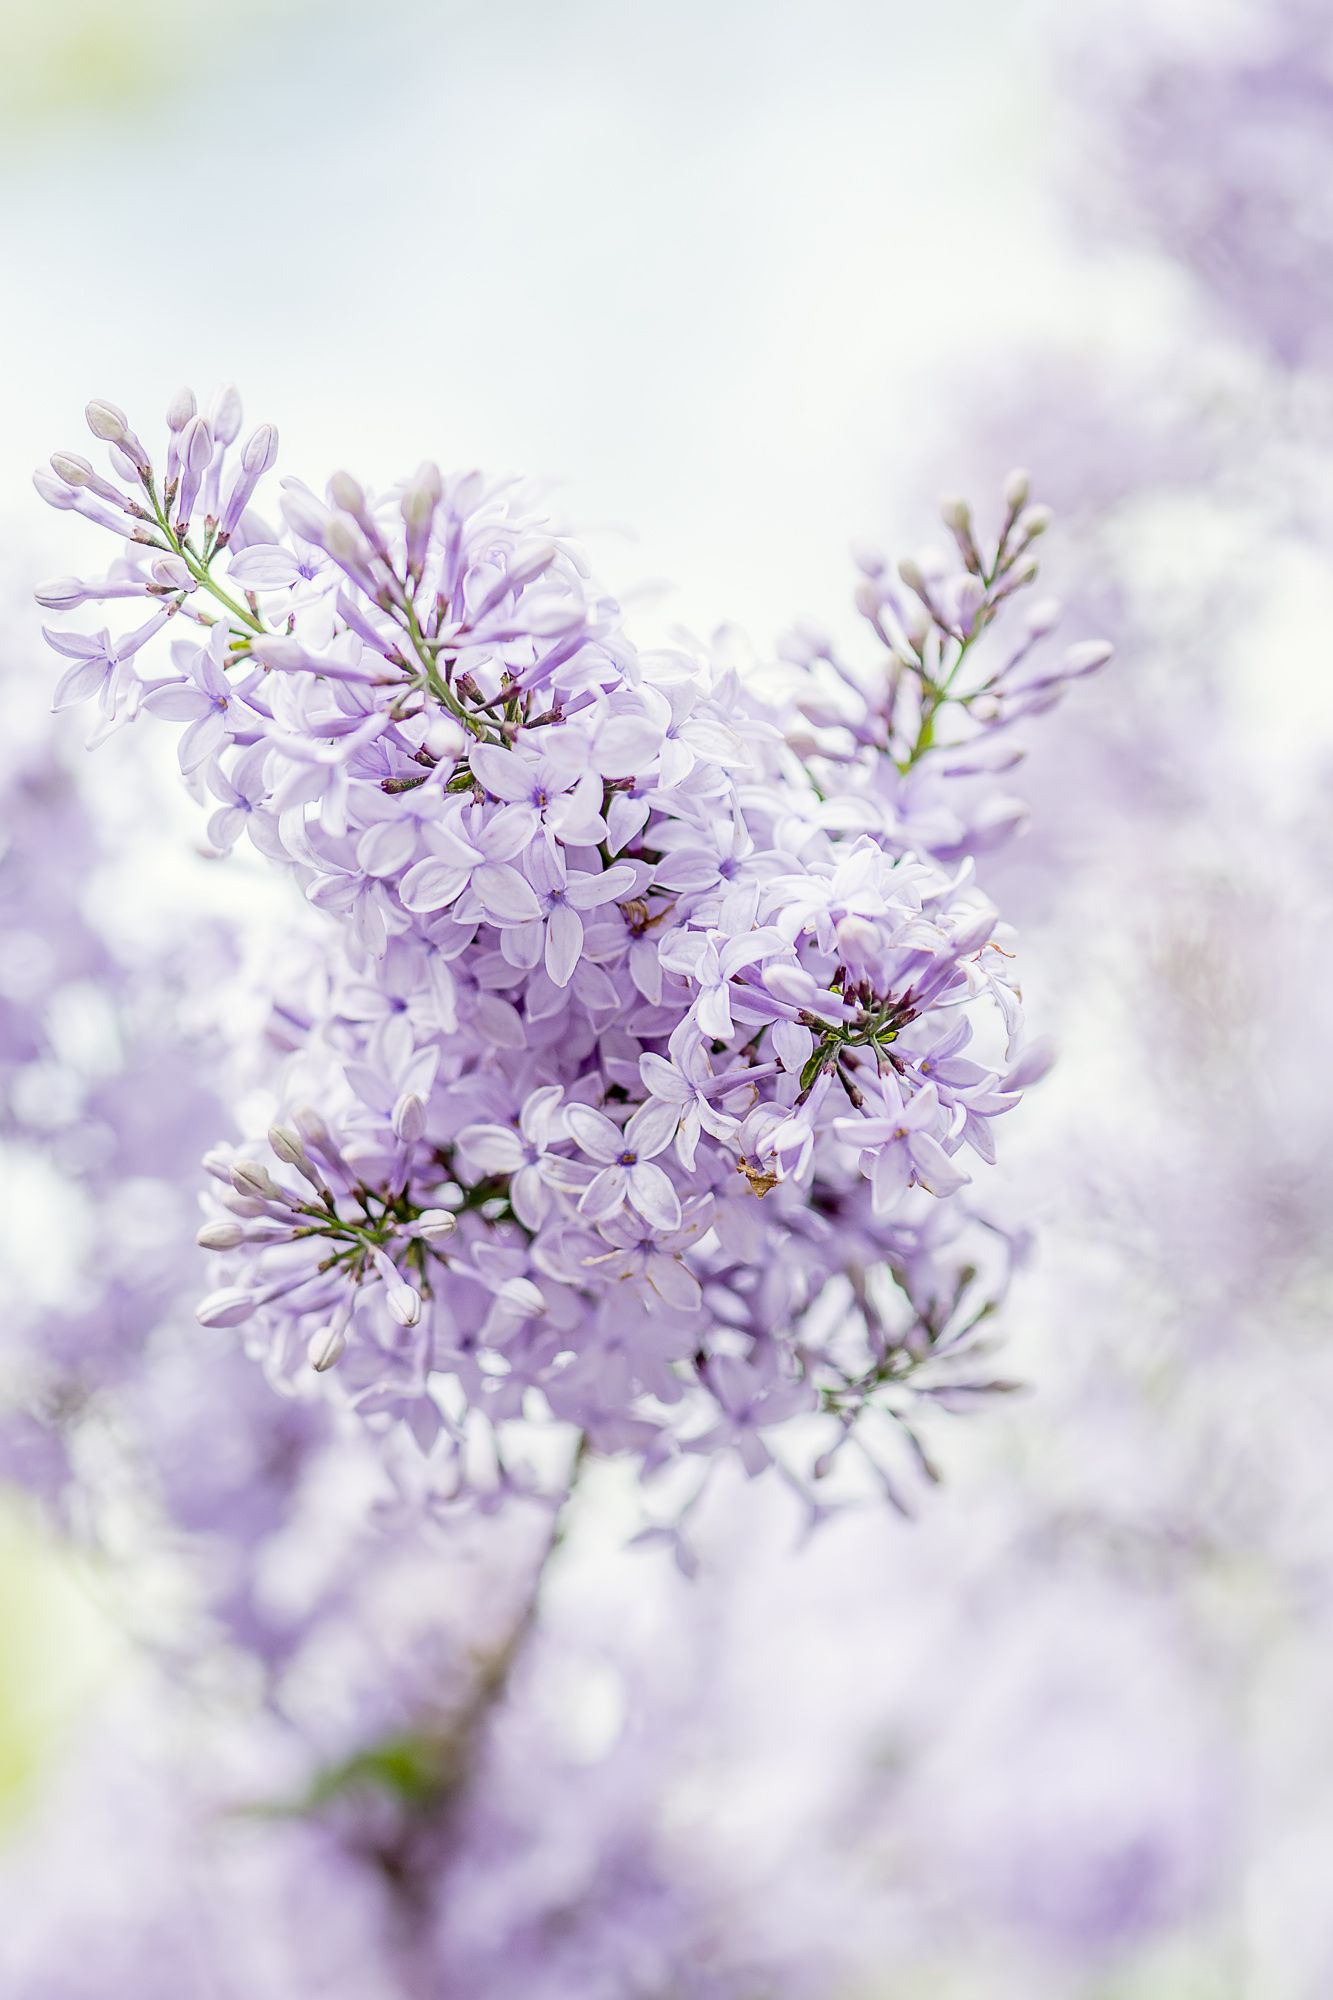 Syringa Vulgaris Lilac Or Common Lilac Is A Species Of Flowering Plant In The Olive Family Oleaceae Raindrops And Roses Lilac Purple Flowers